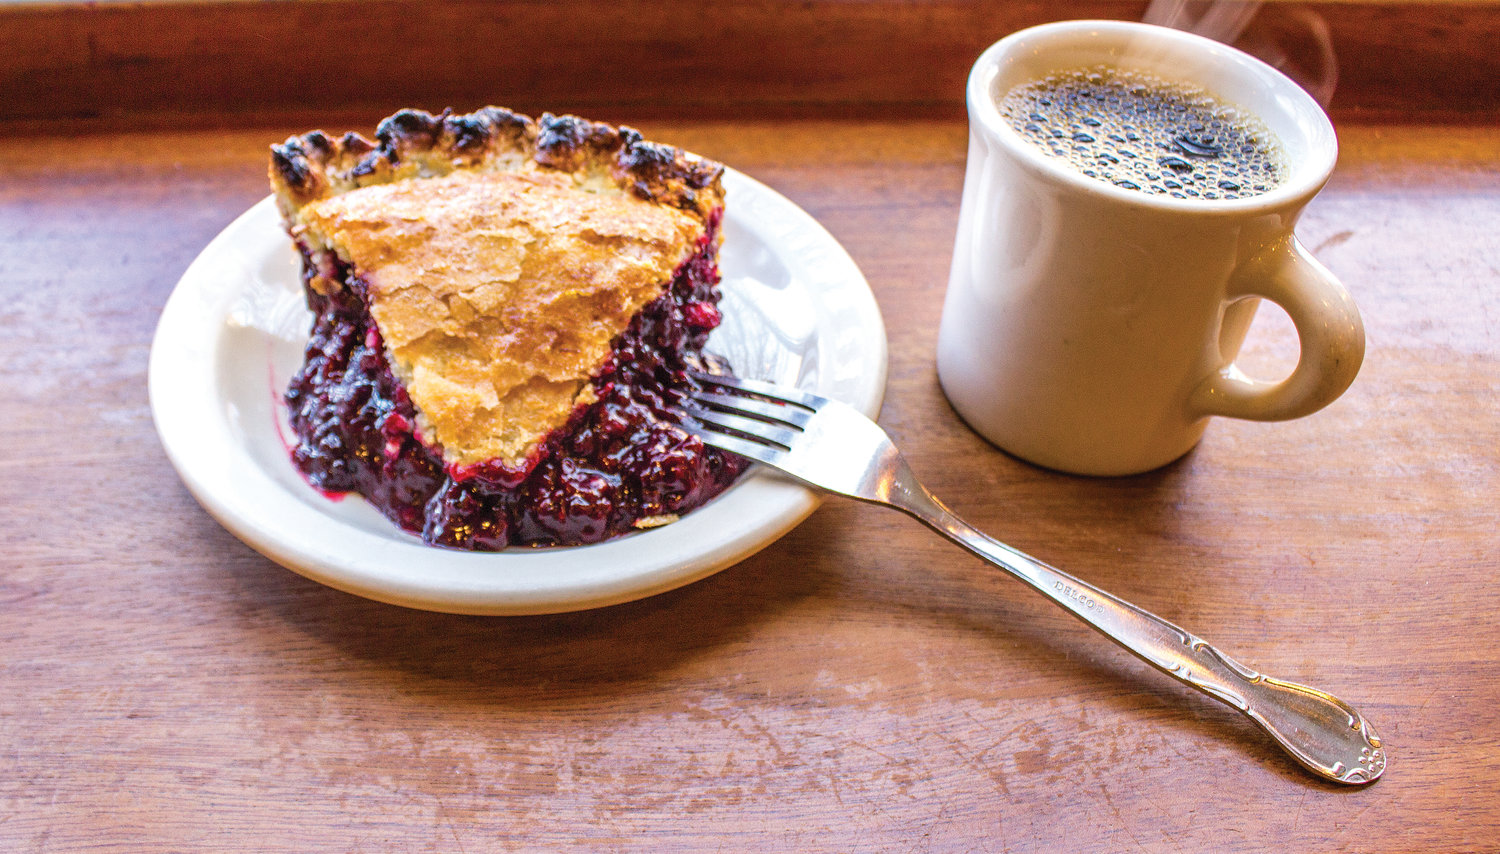 This marionberry pie is a customer favorite, and flies off the shelf. Roth insists the best pairing is coffee, and perhaps a little ice cream.